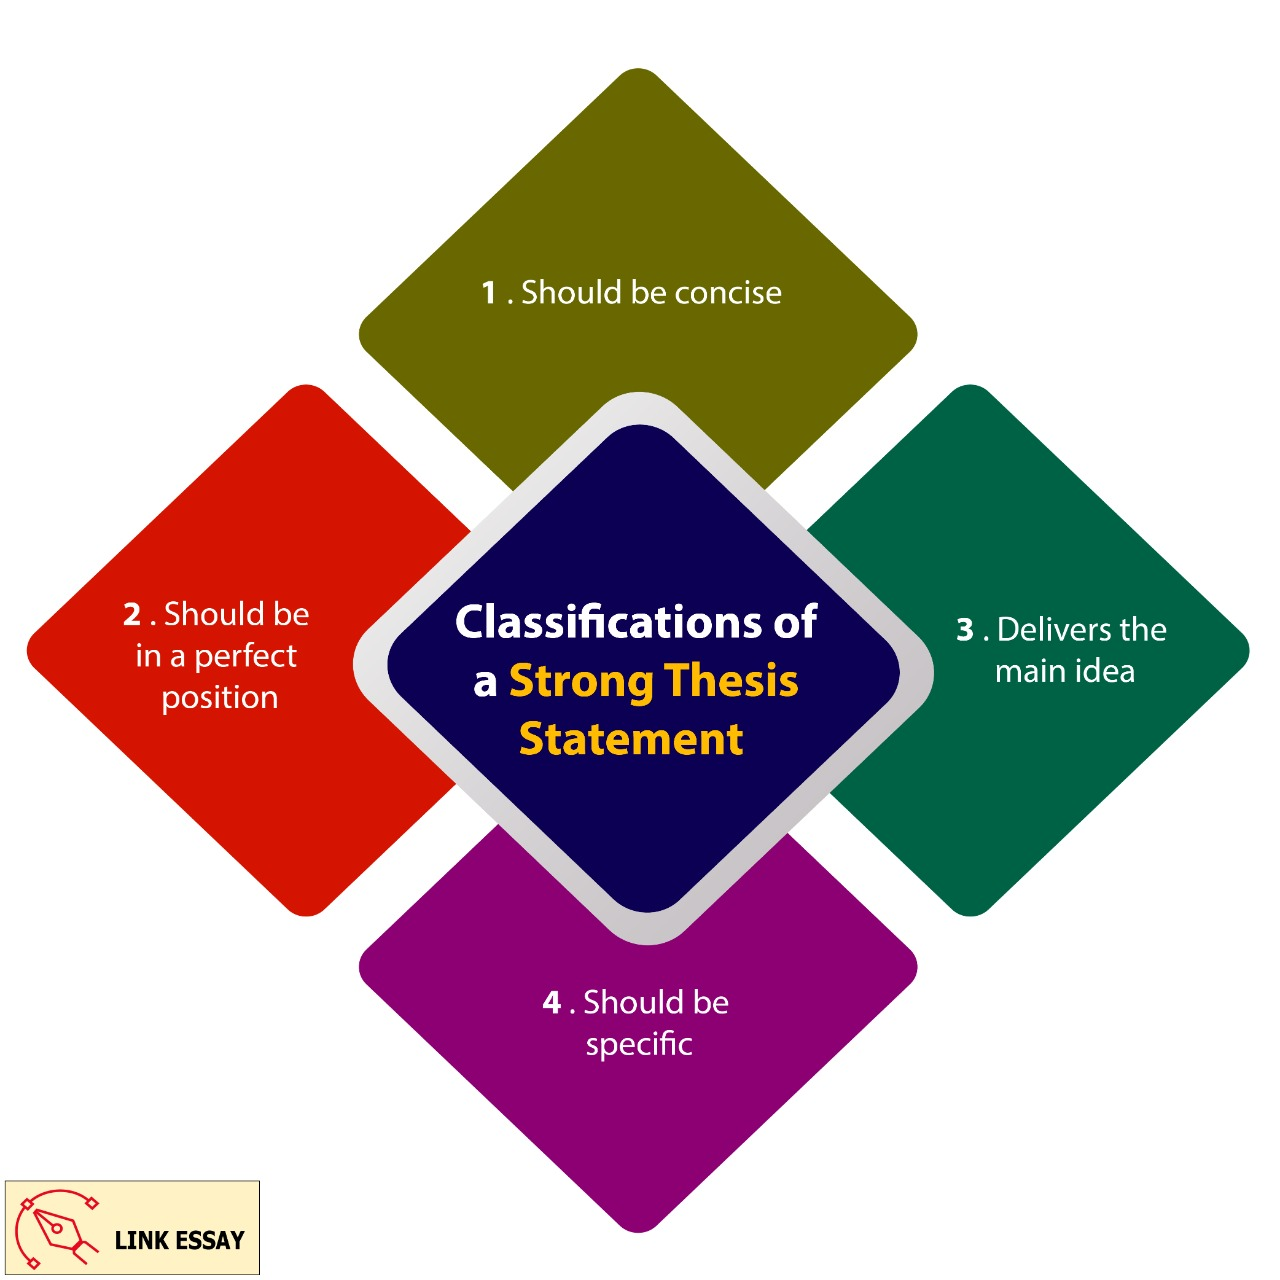 Classifications of a Strong Thesis Statement